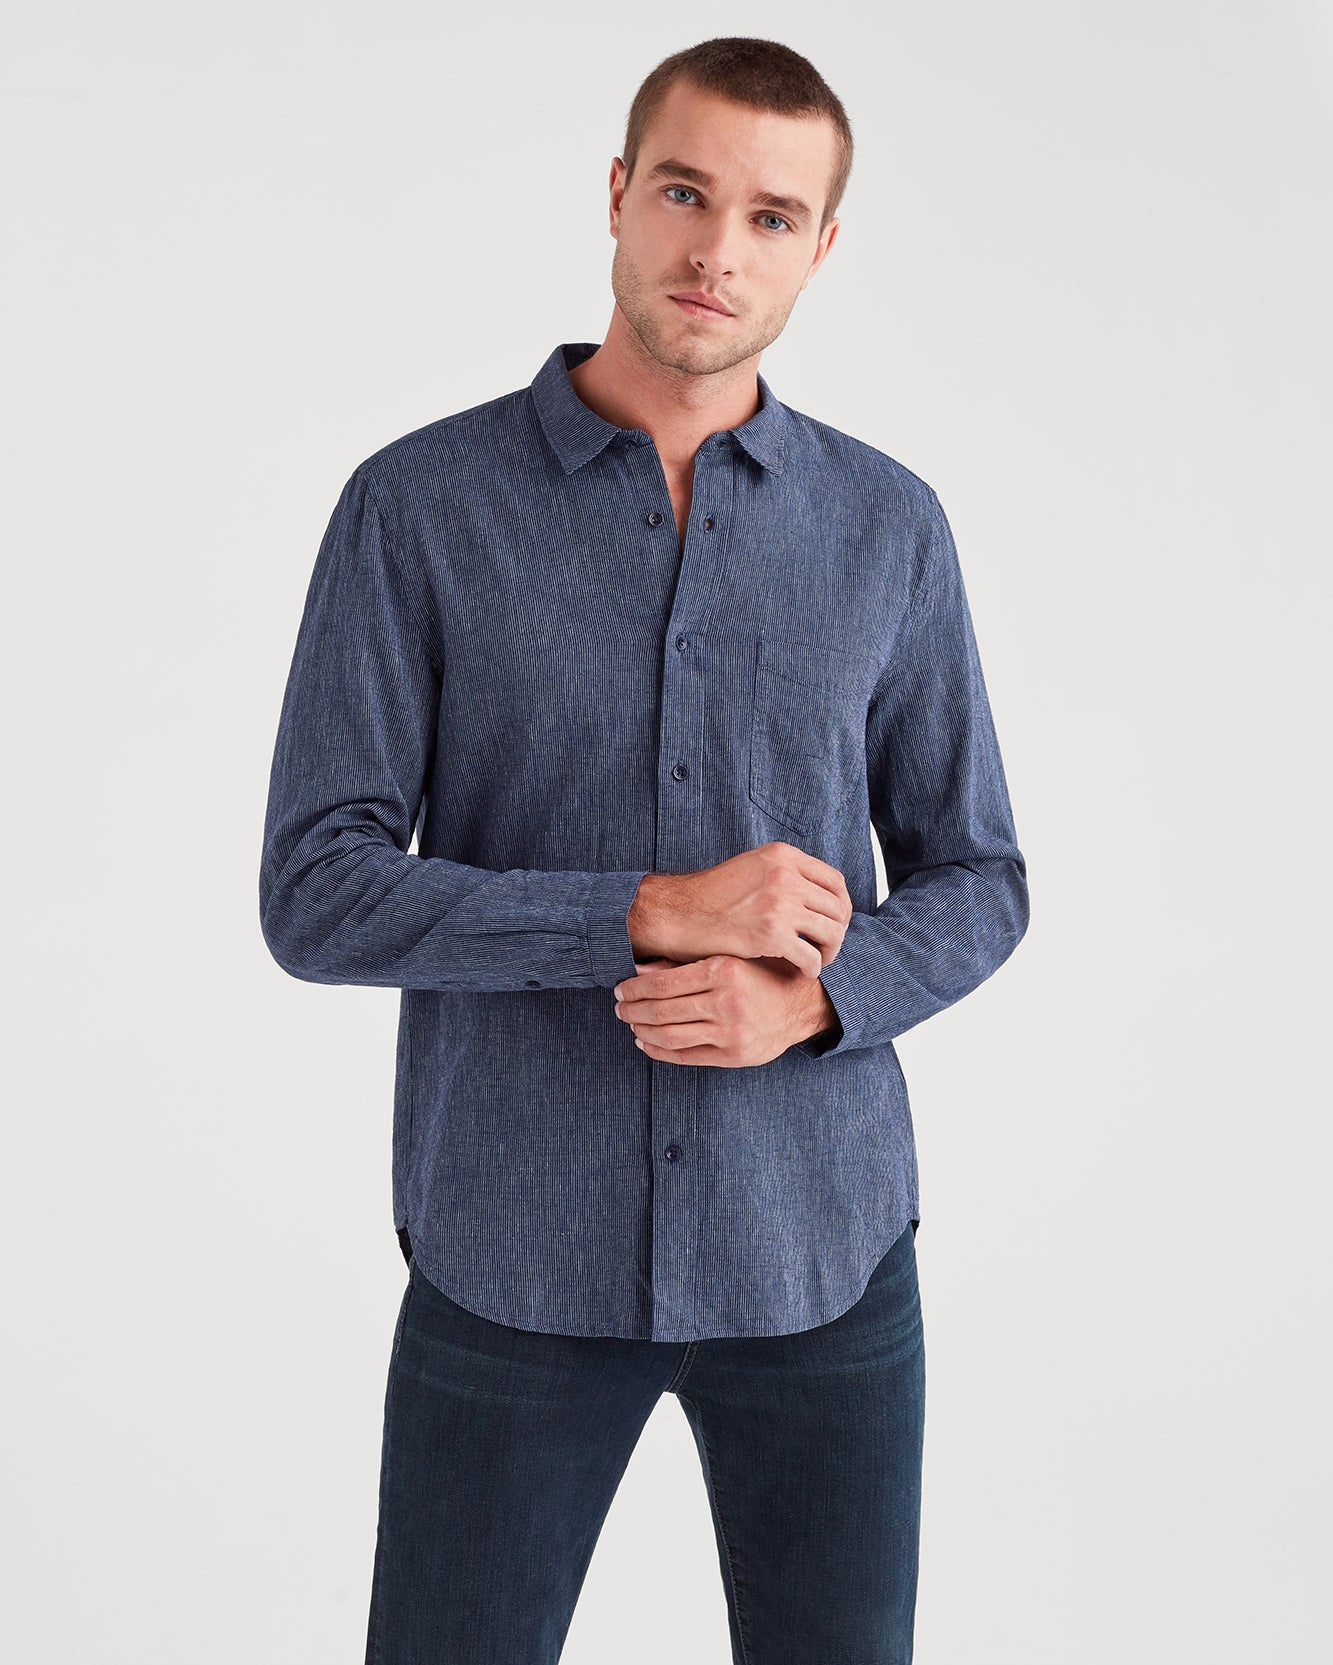 Image of Long Sleeve Microstripe Shirt in Navy